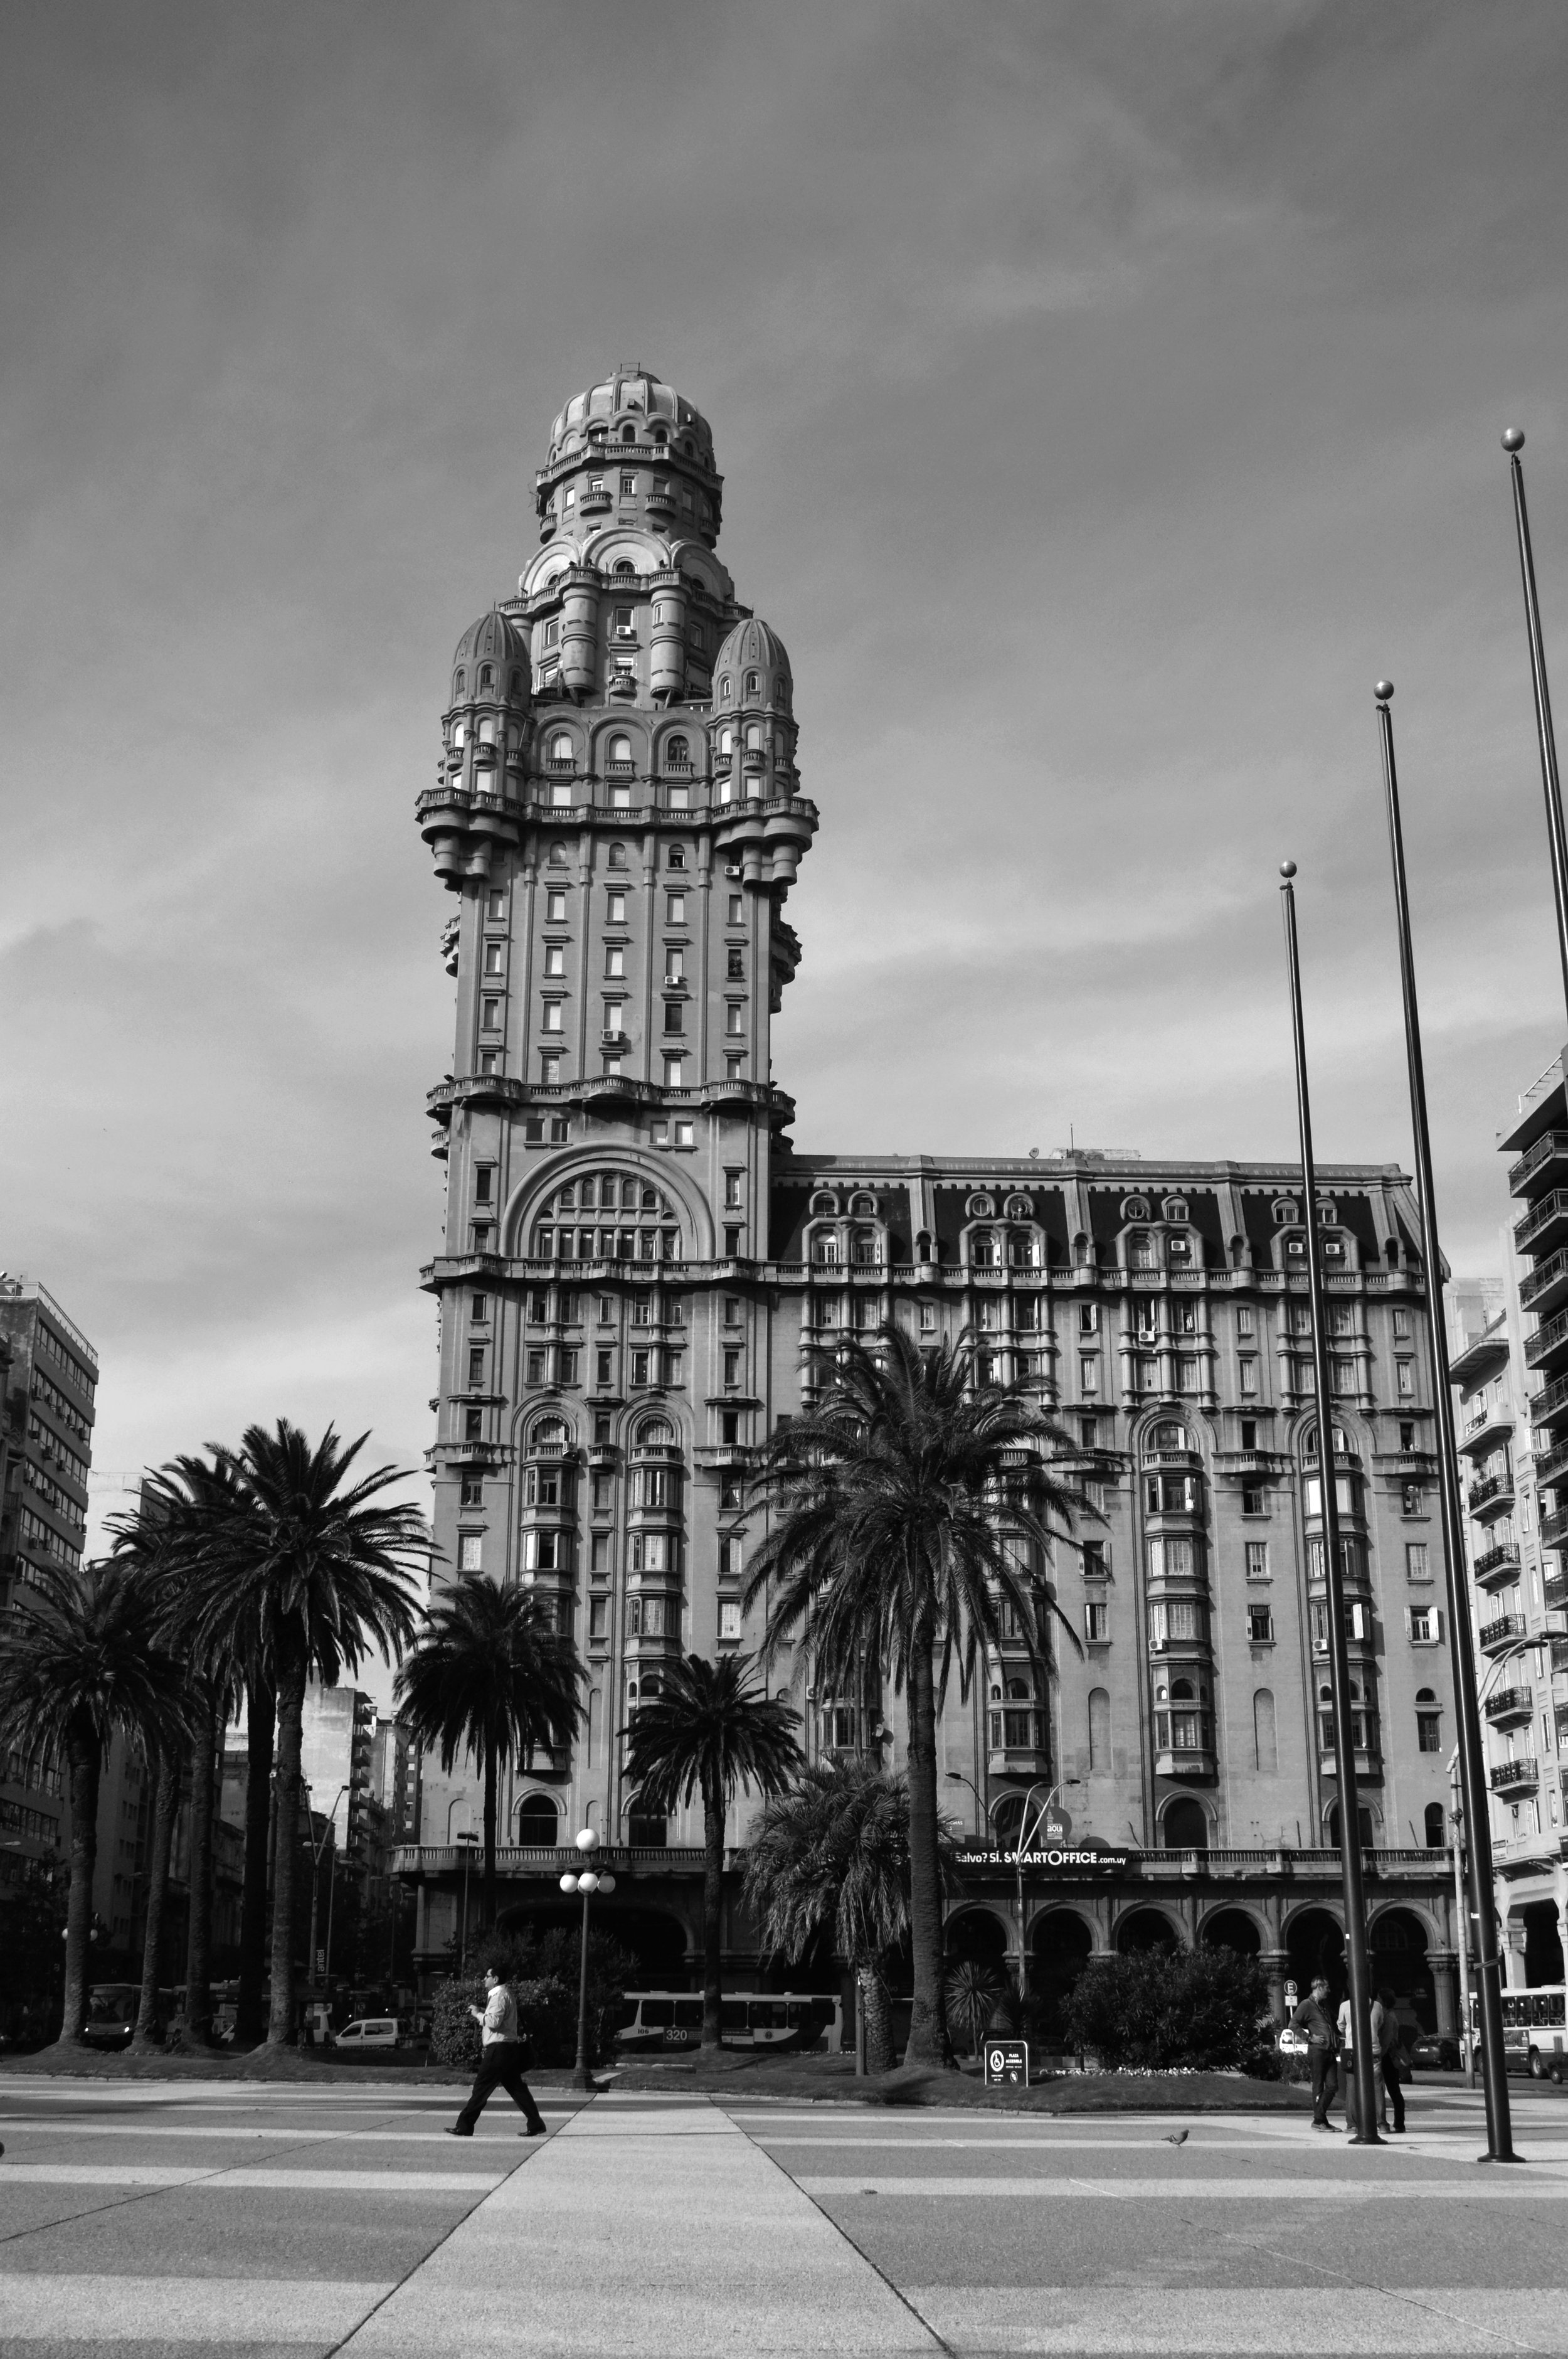 The Palacio Salvo, one of the most iconic buildings in South America, and setting for 'A Ghost Story', a chapter in my forthcoming novel, 'The Red Masks of Montevideo'. Photo source: Wikicommons